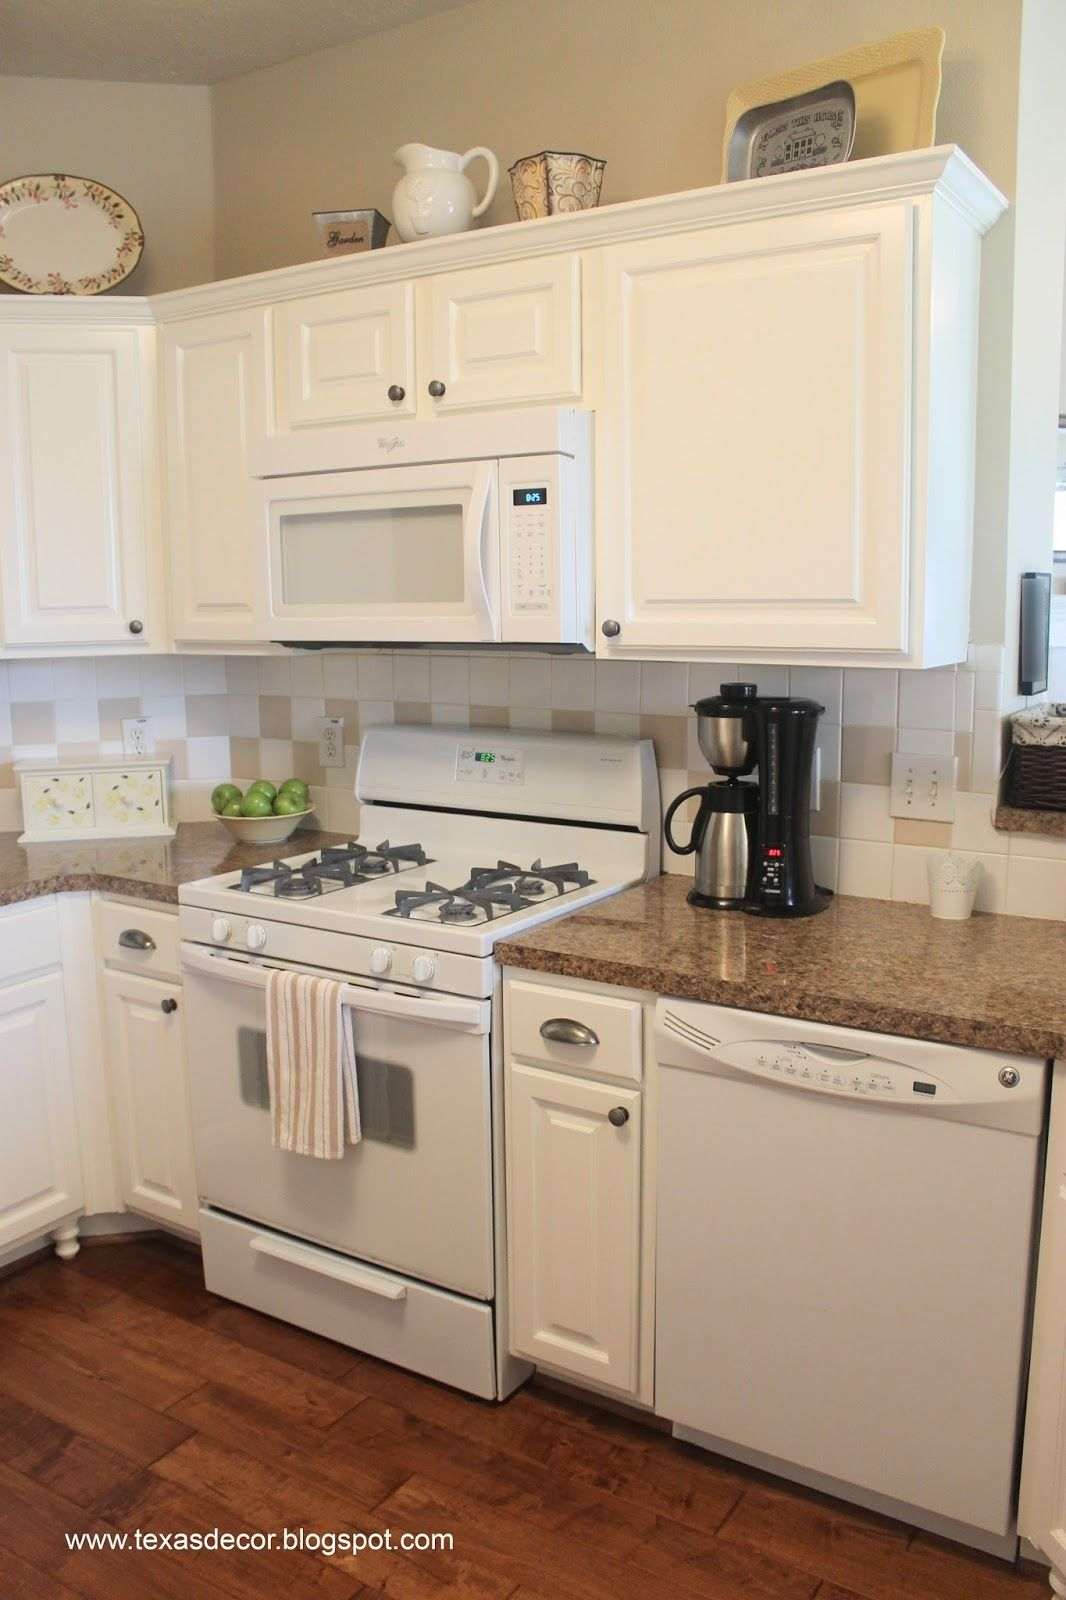 Best Color For Kitchen Cabinets With White Appliances Antique White Kitchen Cabinets Painting Kitchen Cabinets White Beige Kitchen